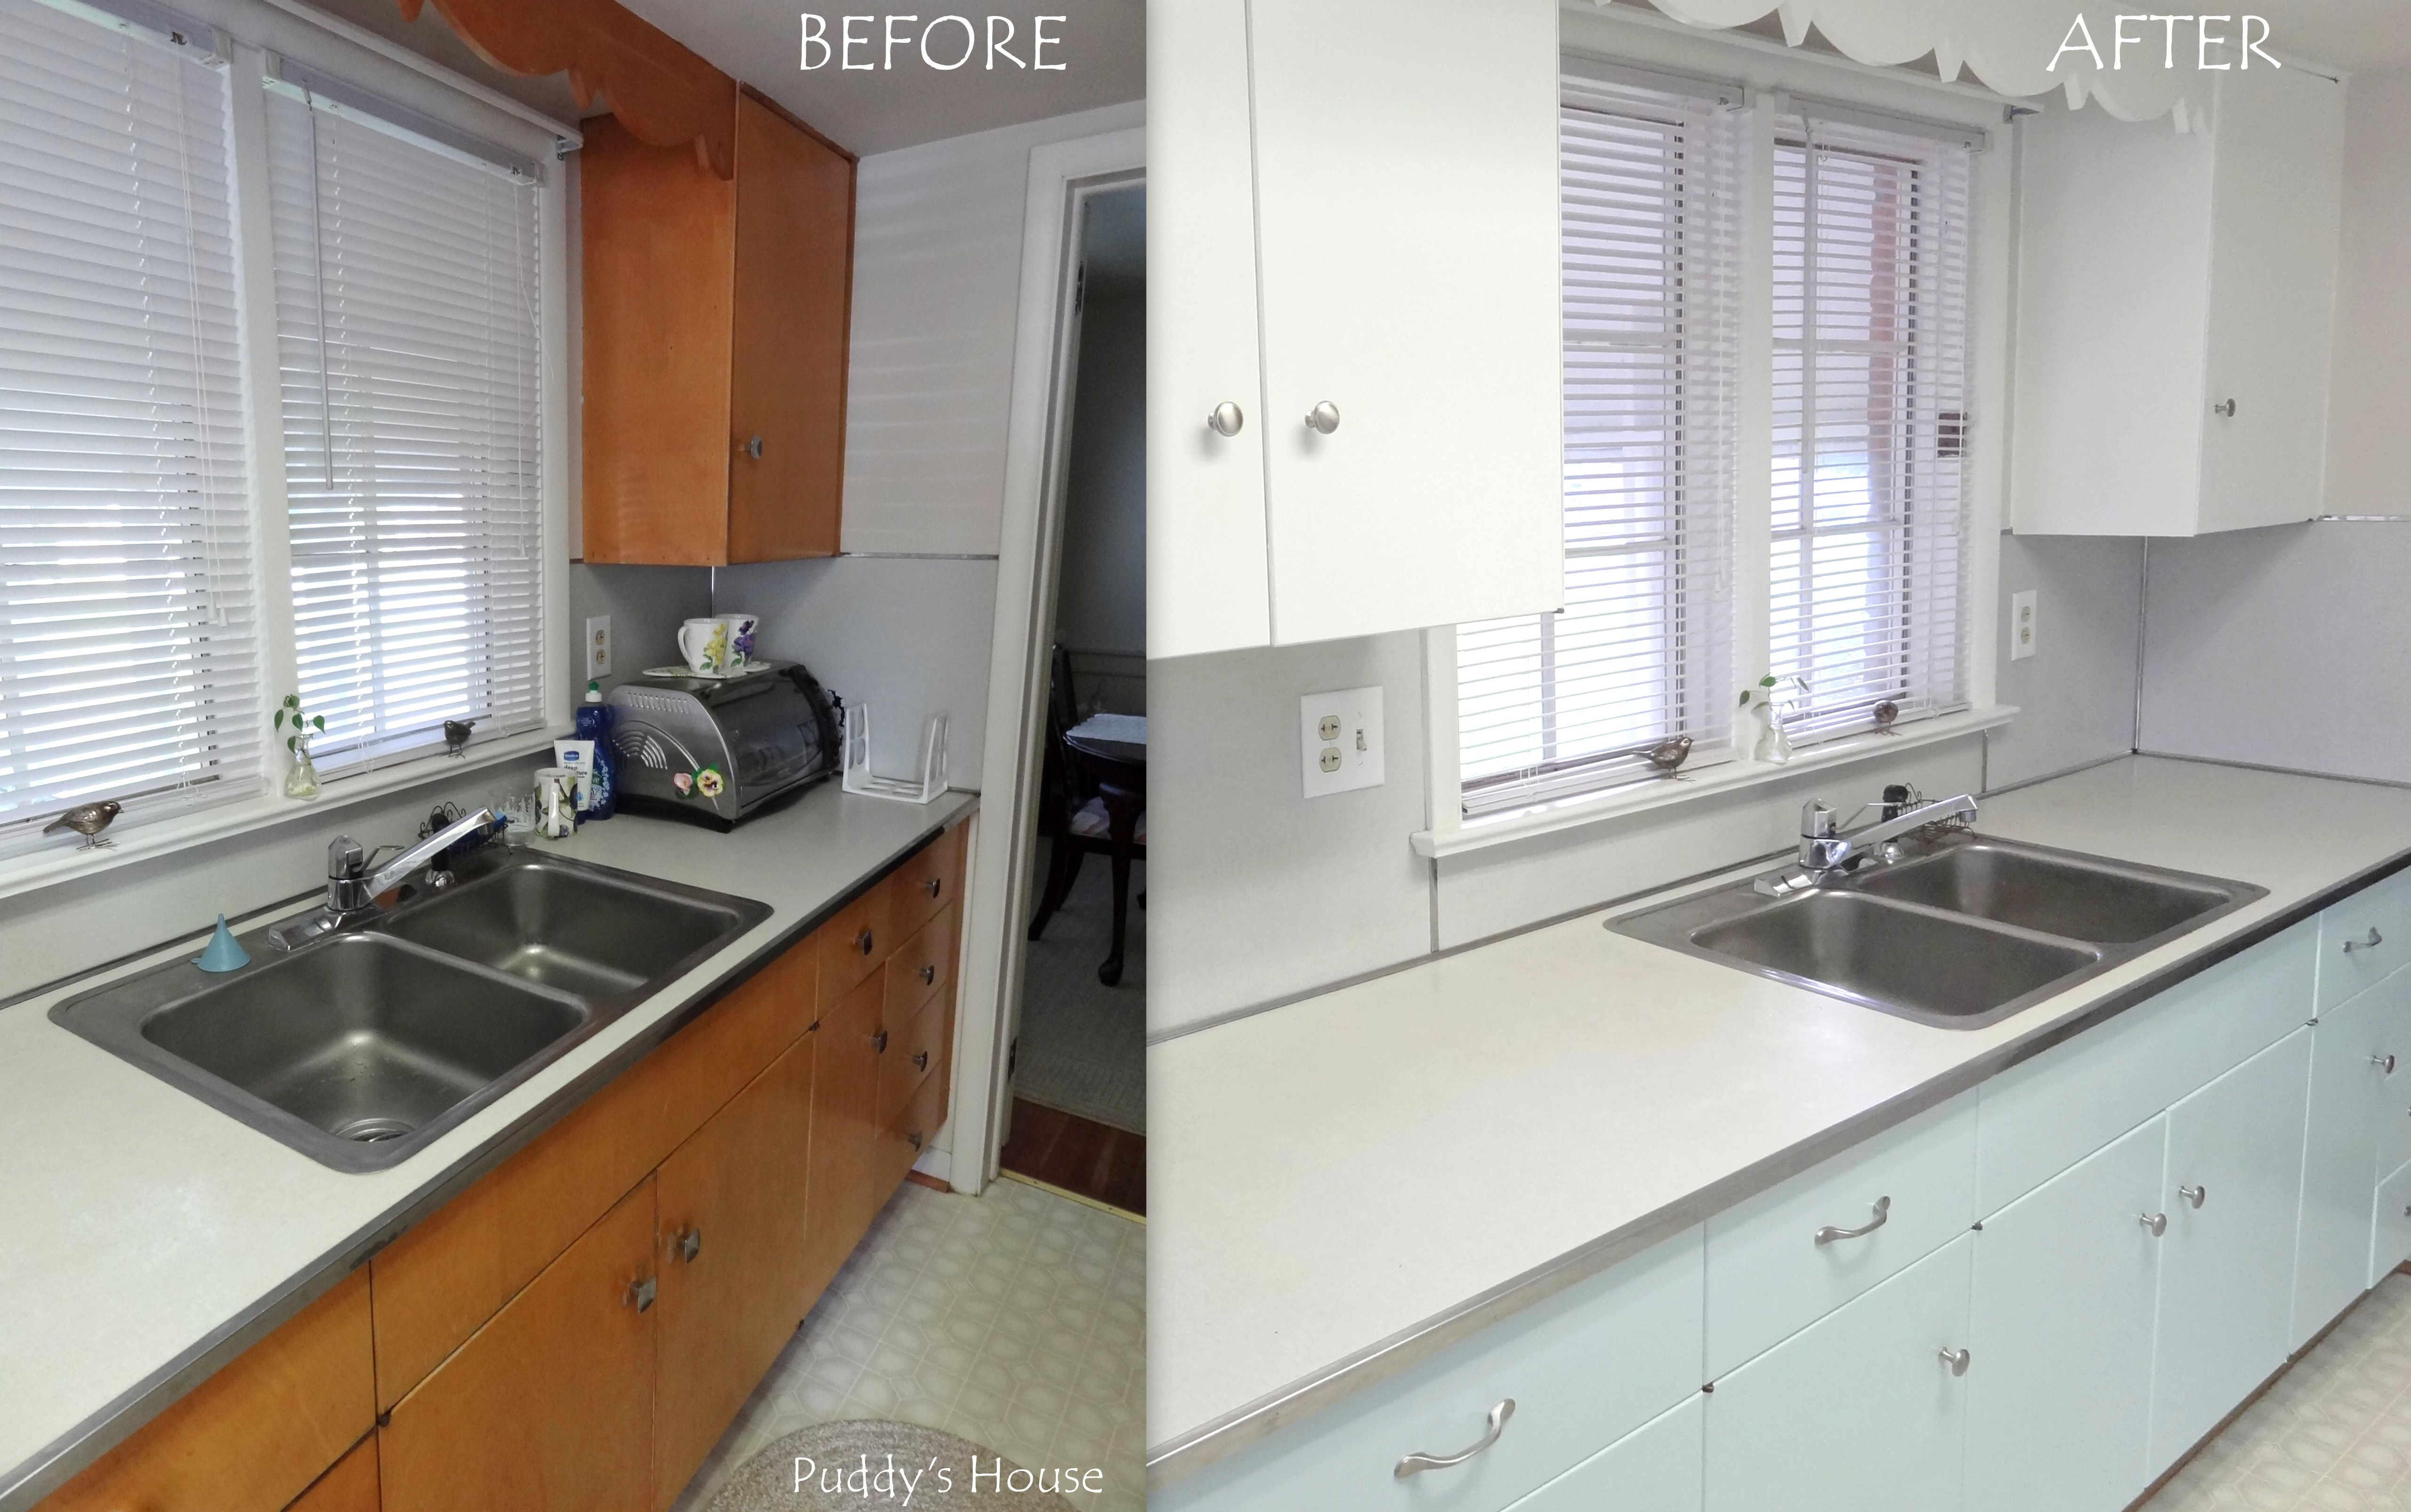 Kitchen makeover puddy 39 s house for Kitchen cupboard makeover before and after